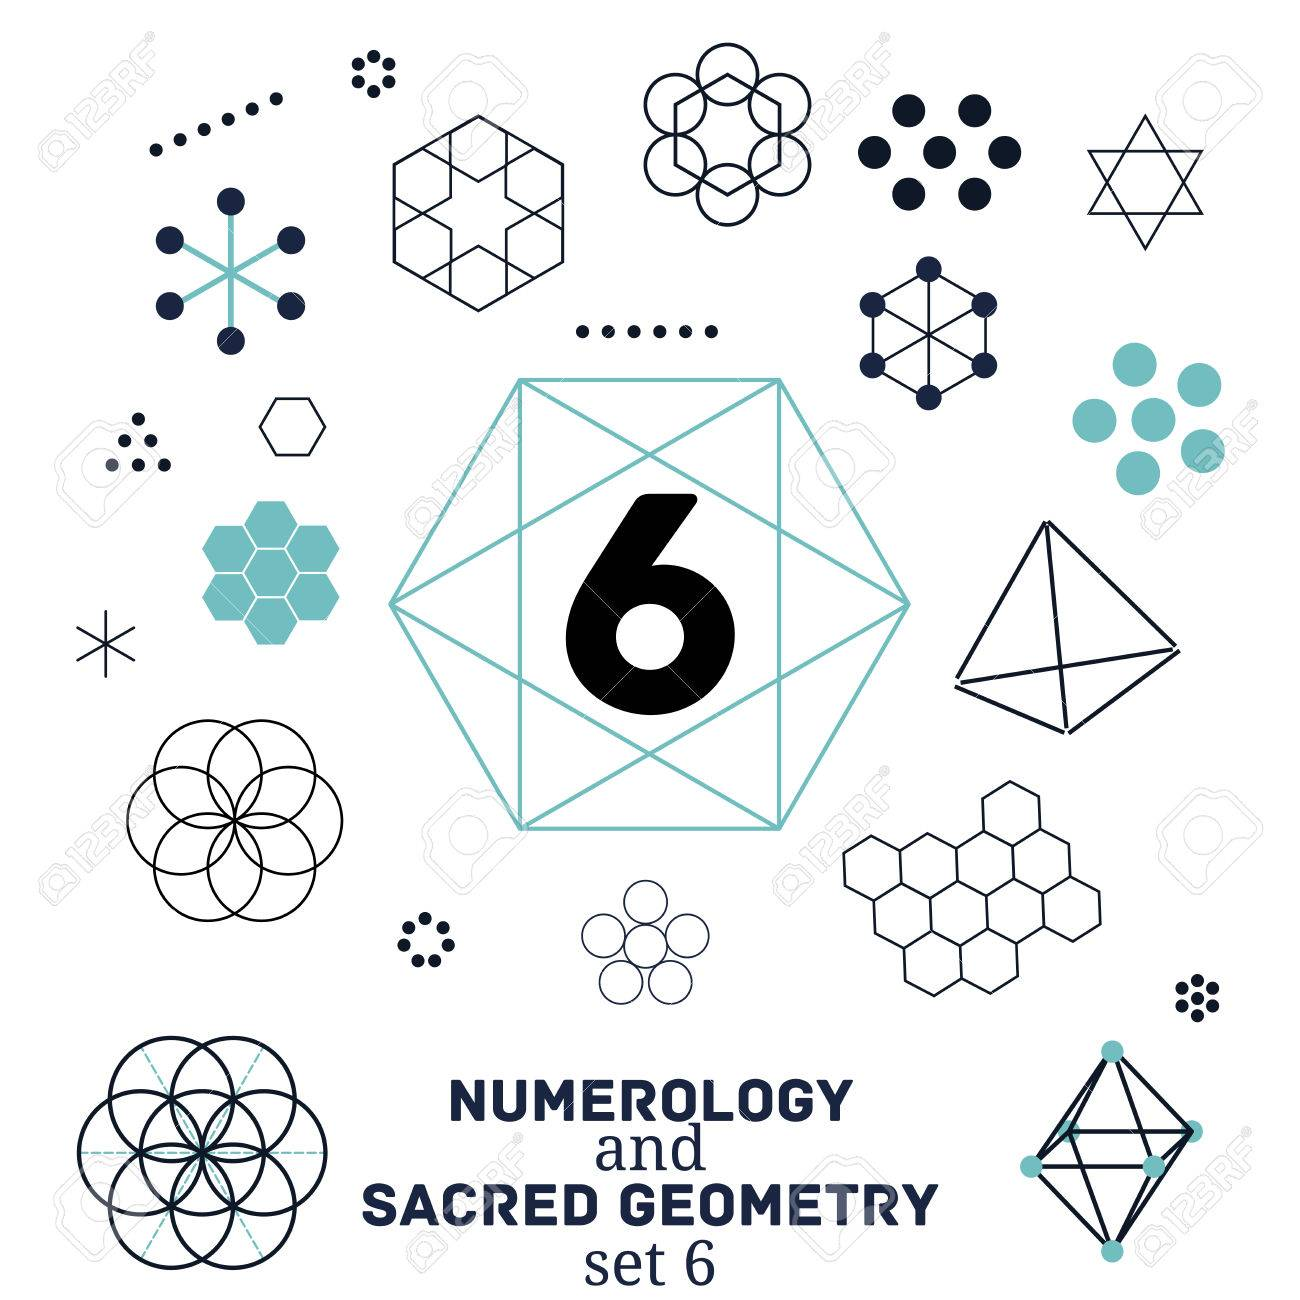 Sacred geometry and numerology symbols vector illustration  Set